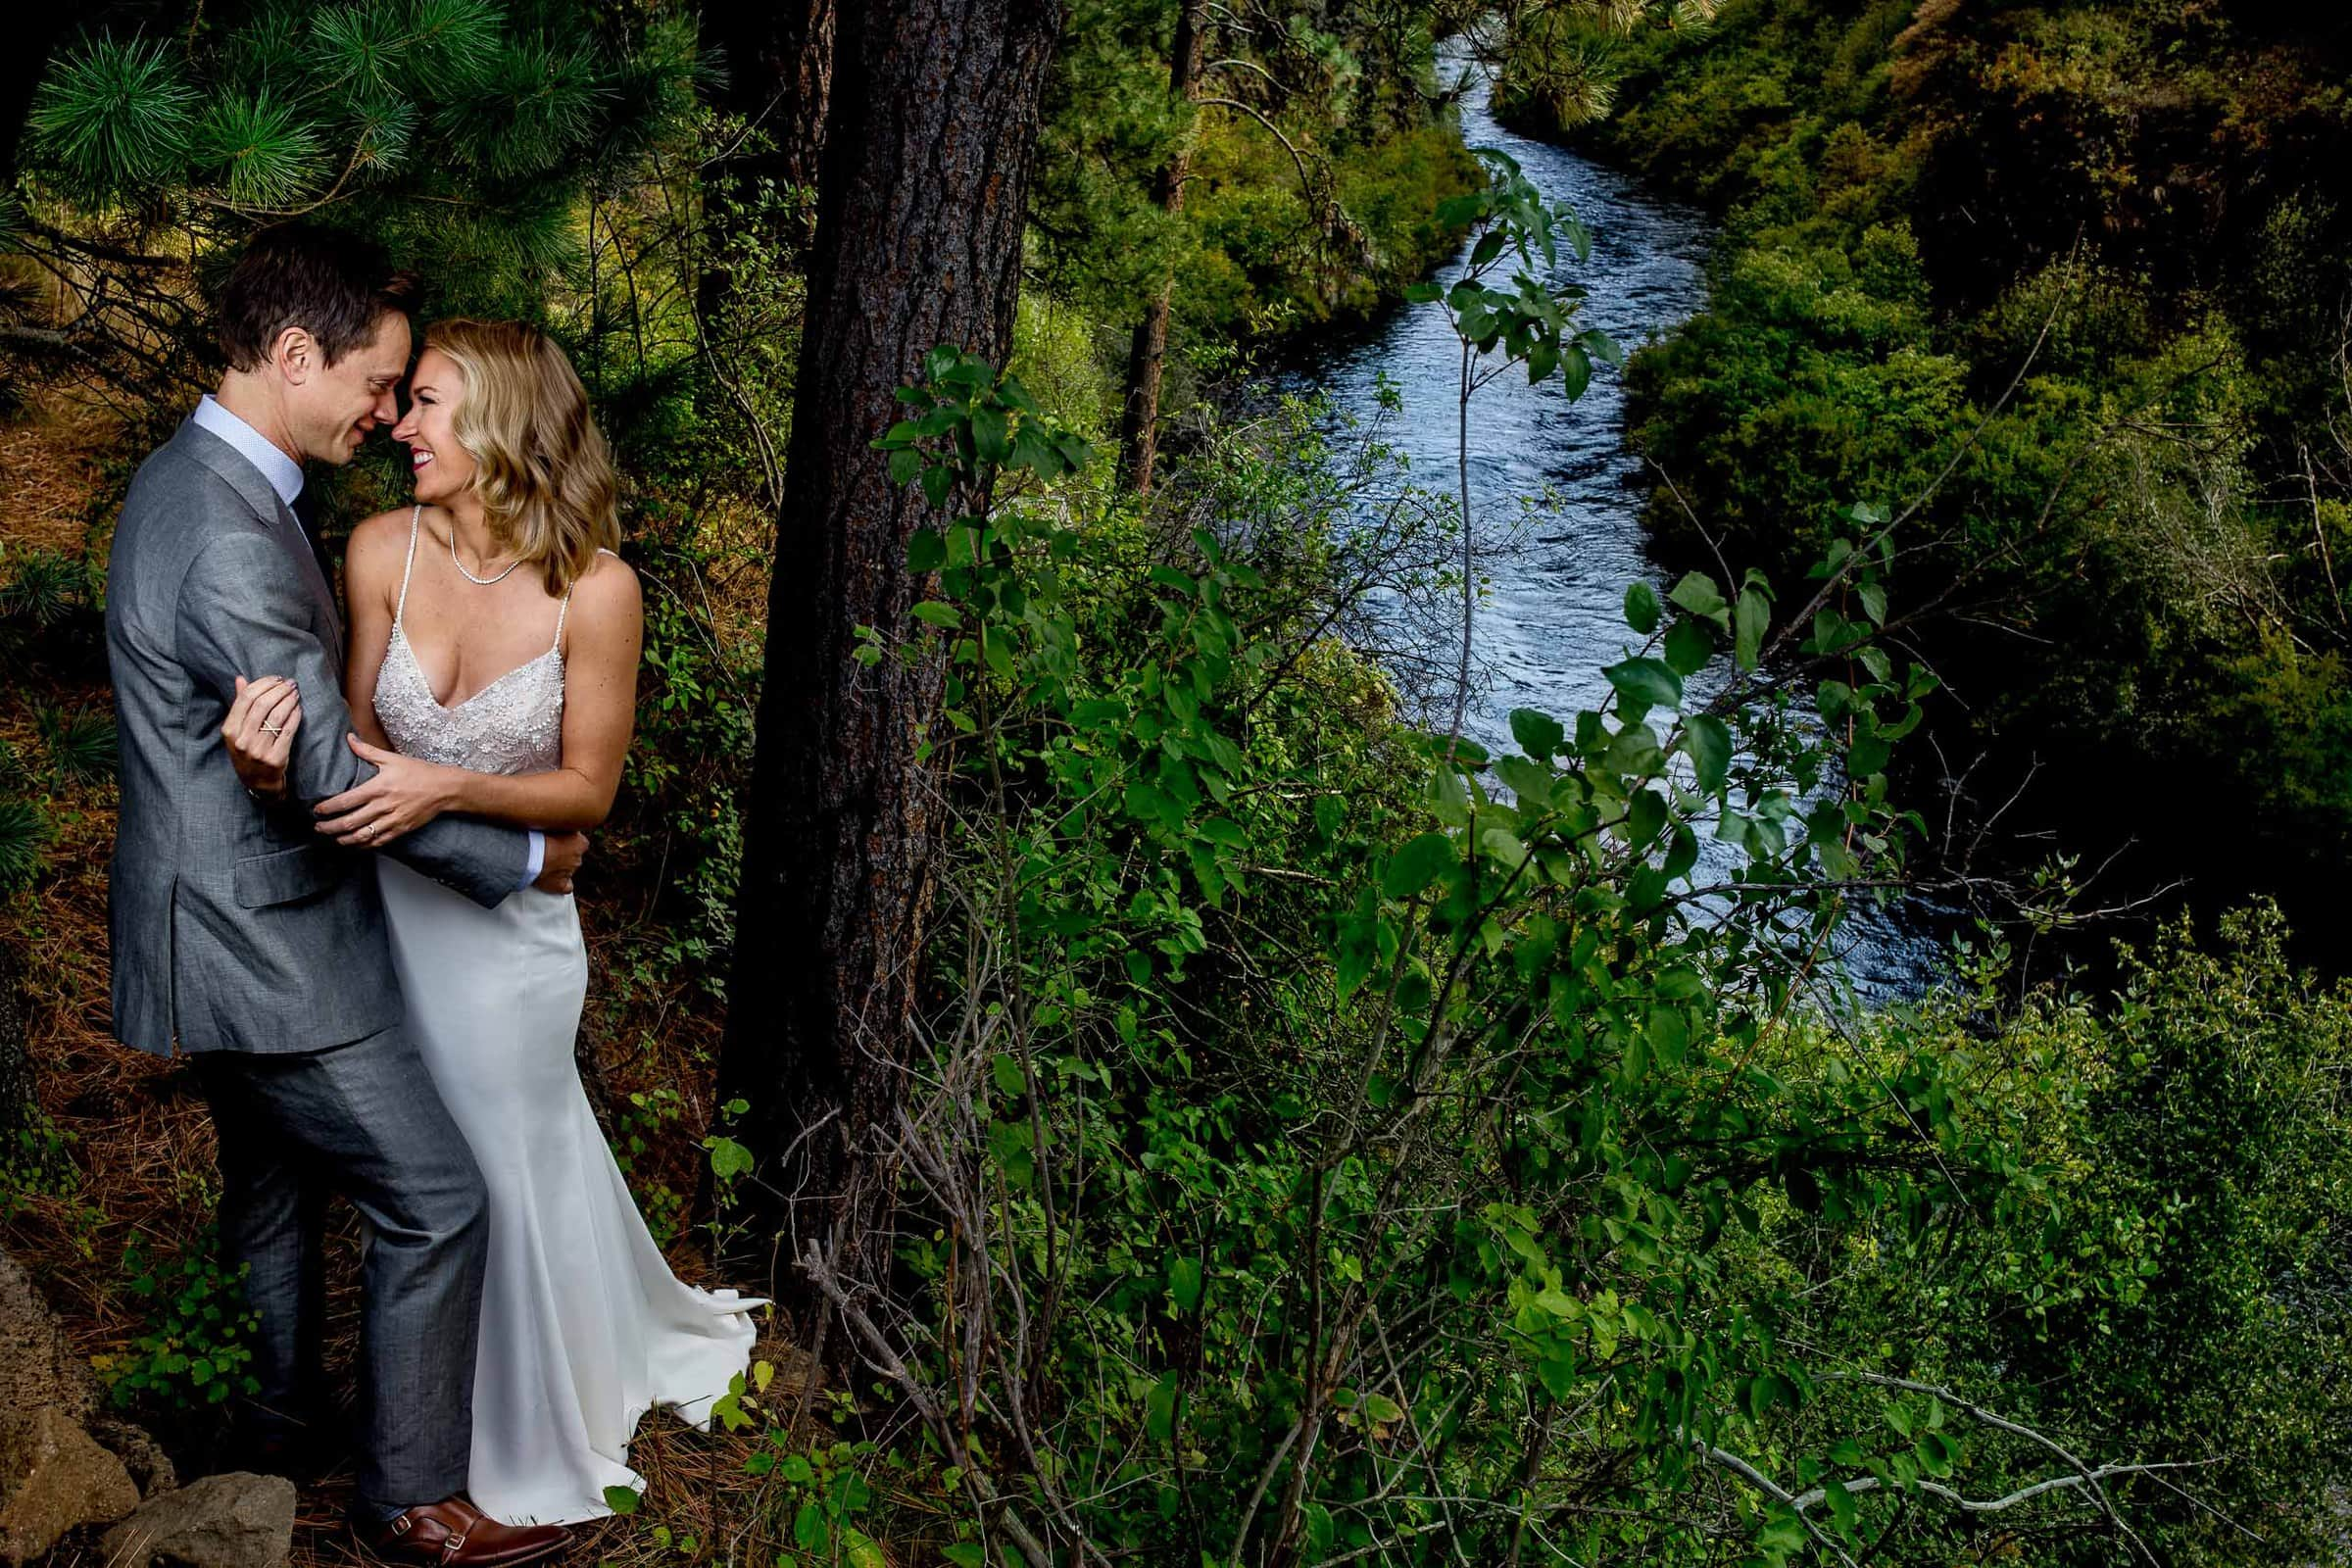 Gorgeous portrait of bride and groom near a zigzag river during their House on Metolius Wedding celebration